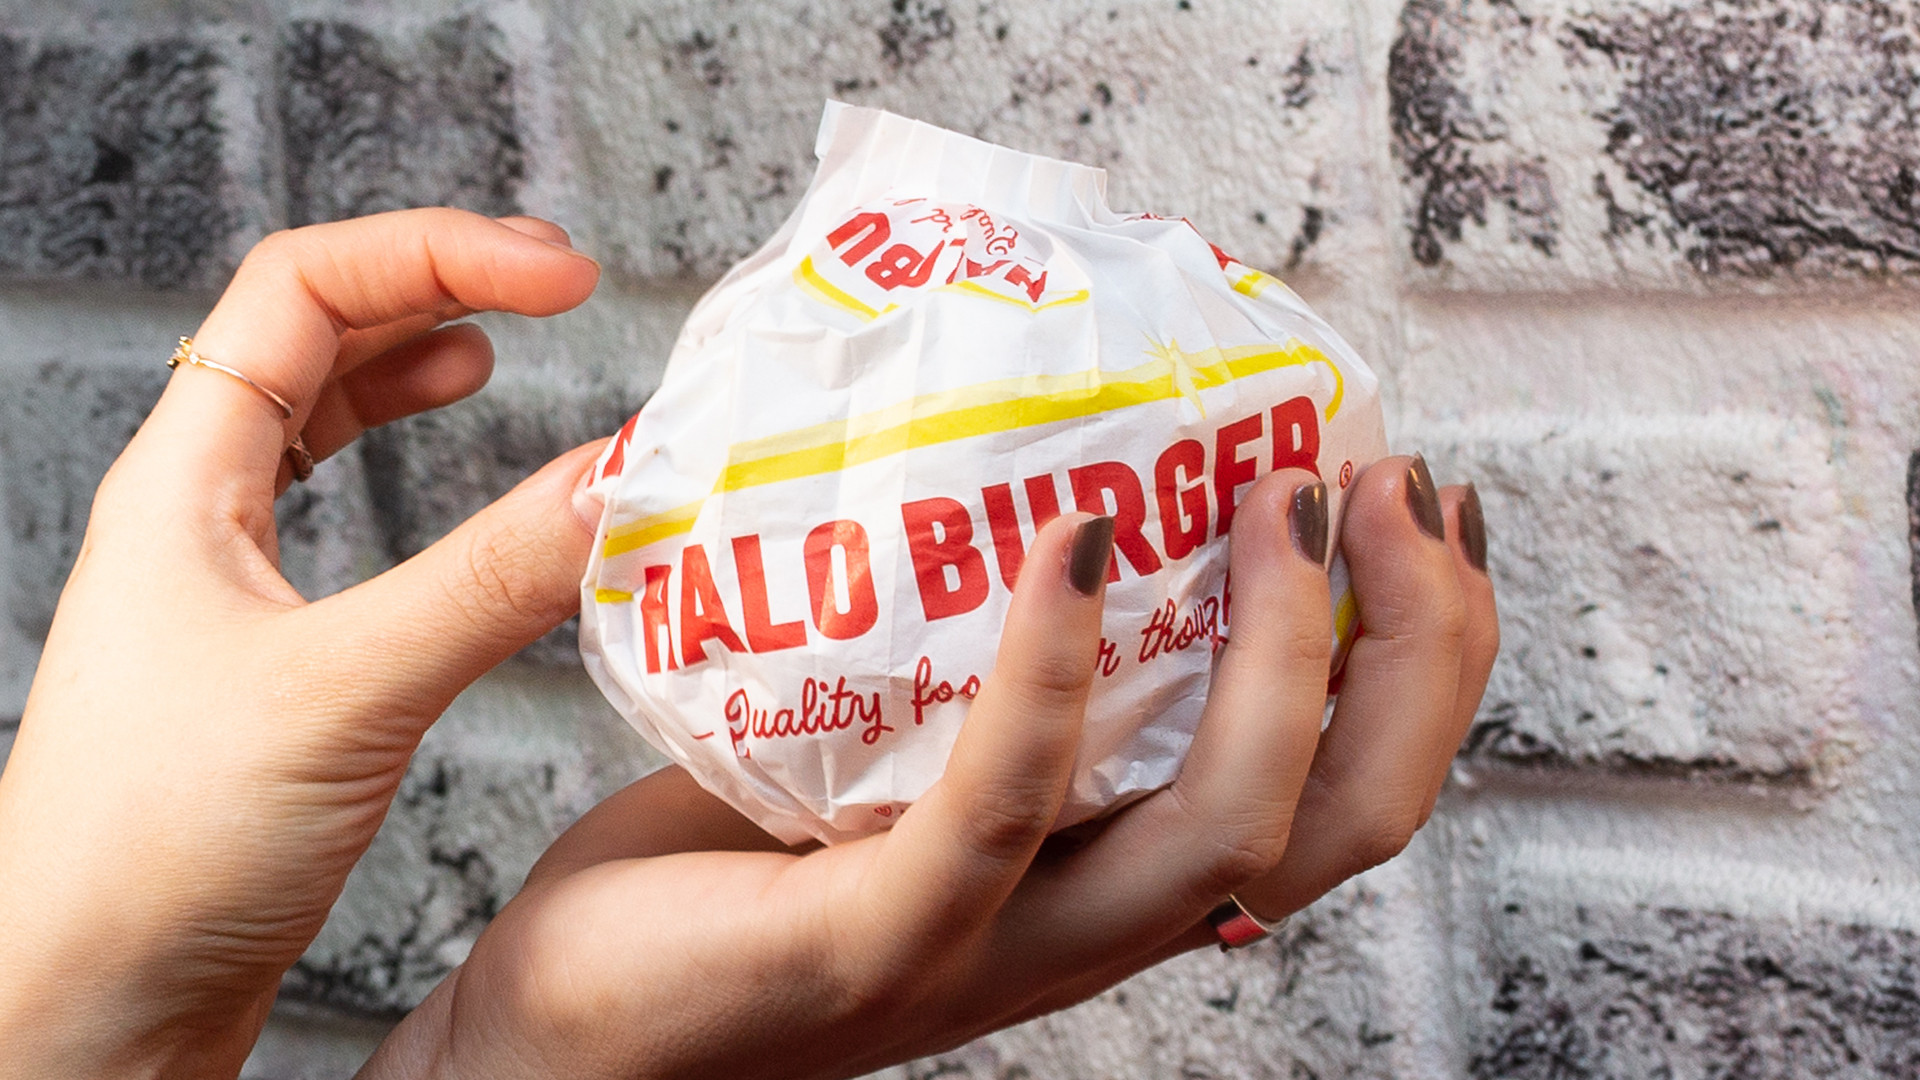 Best plant-based burgers in London – Halo Burger